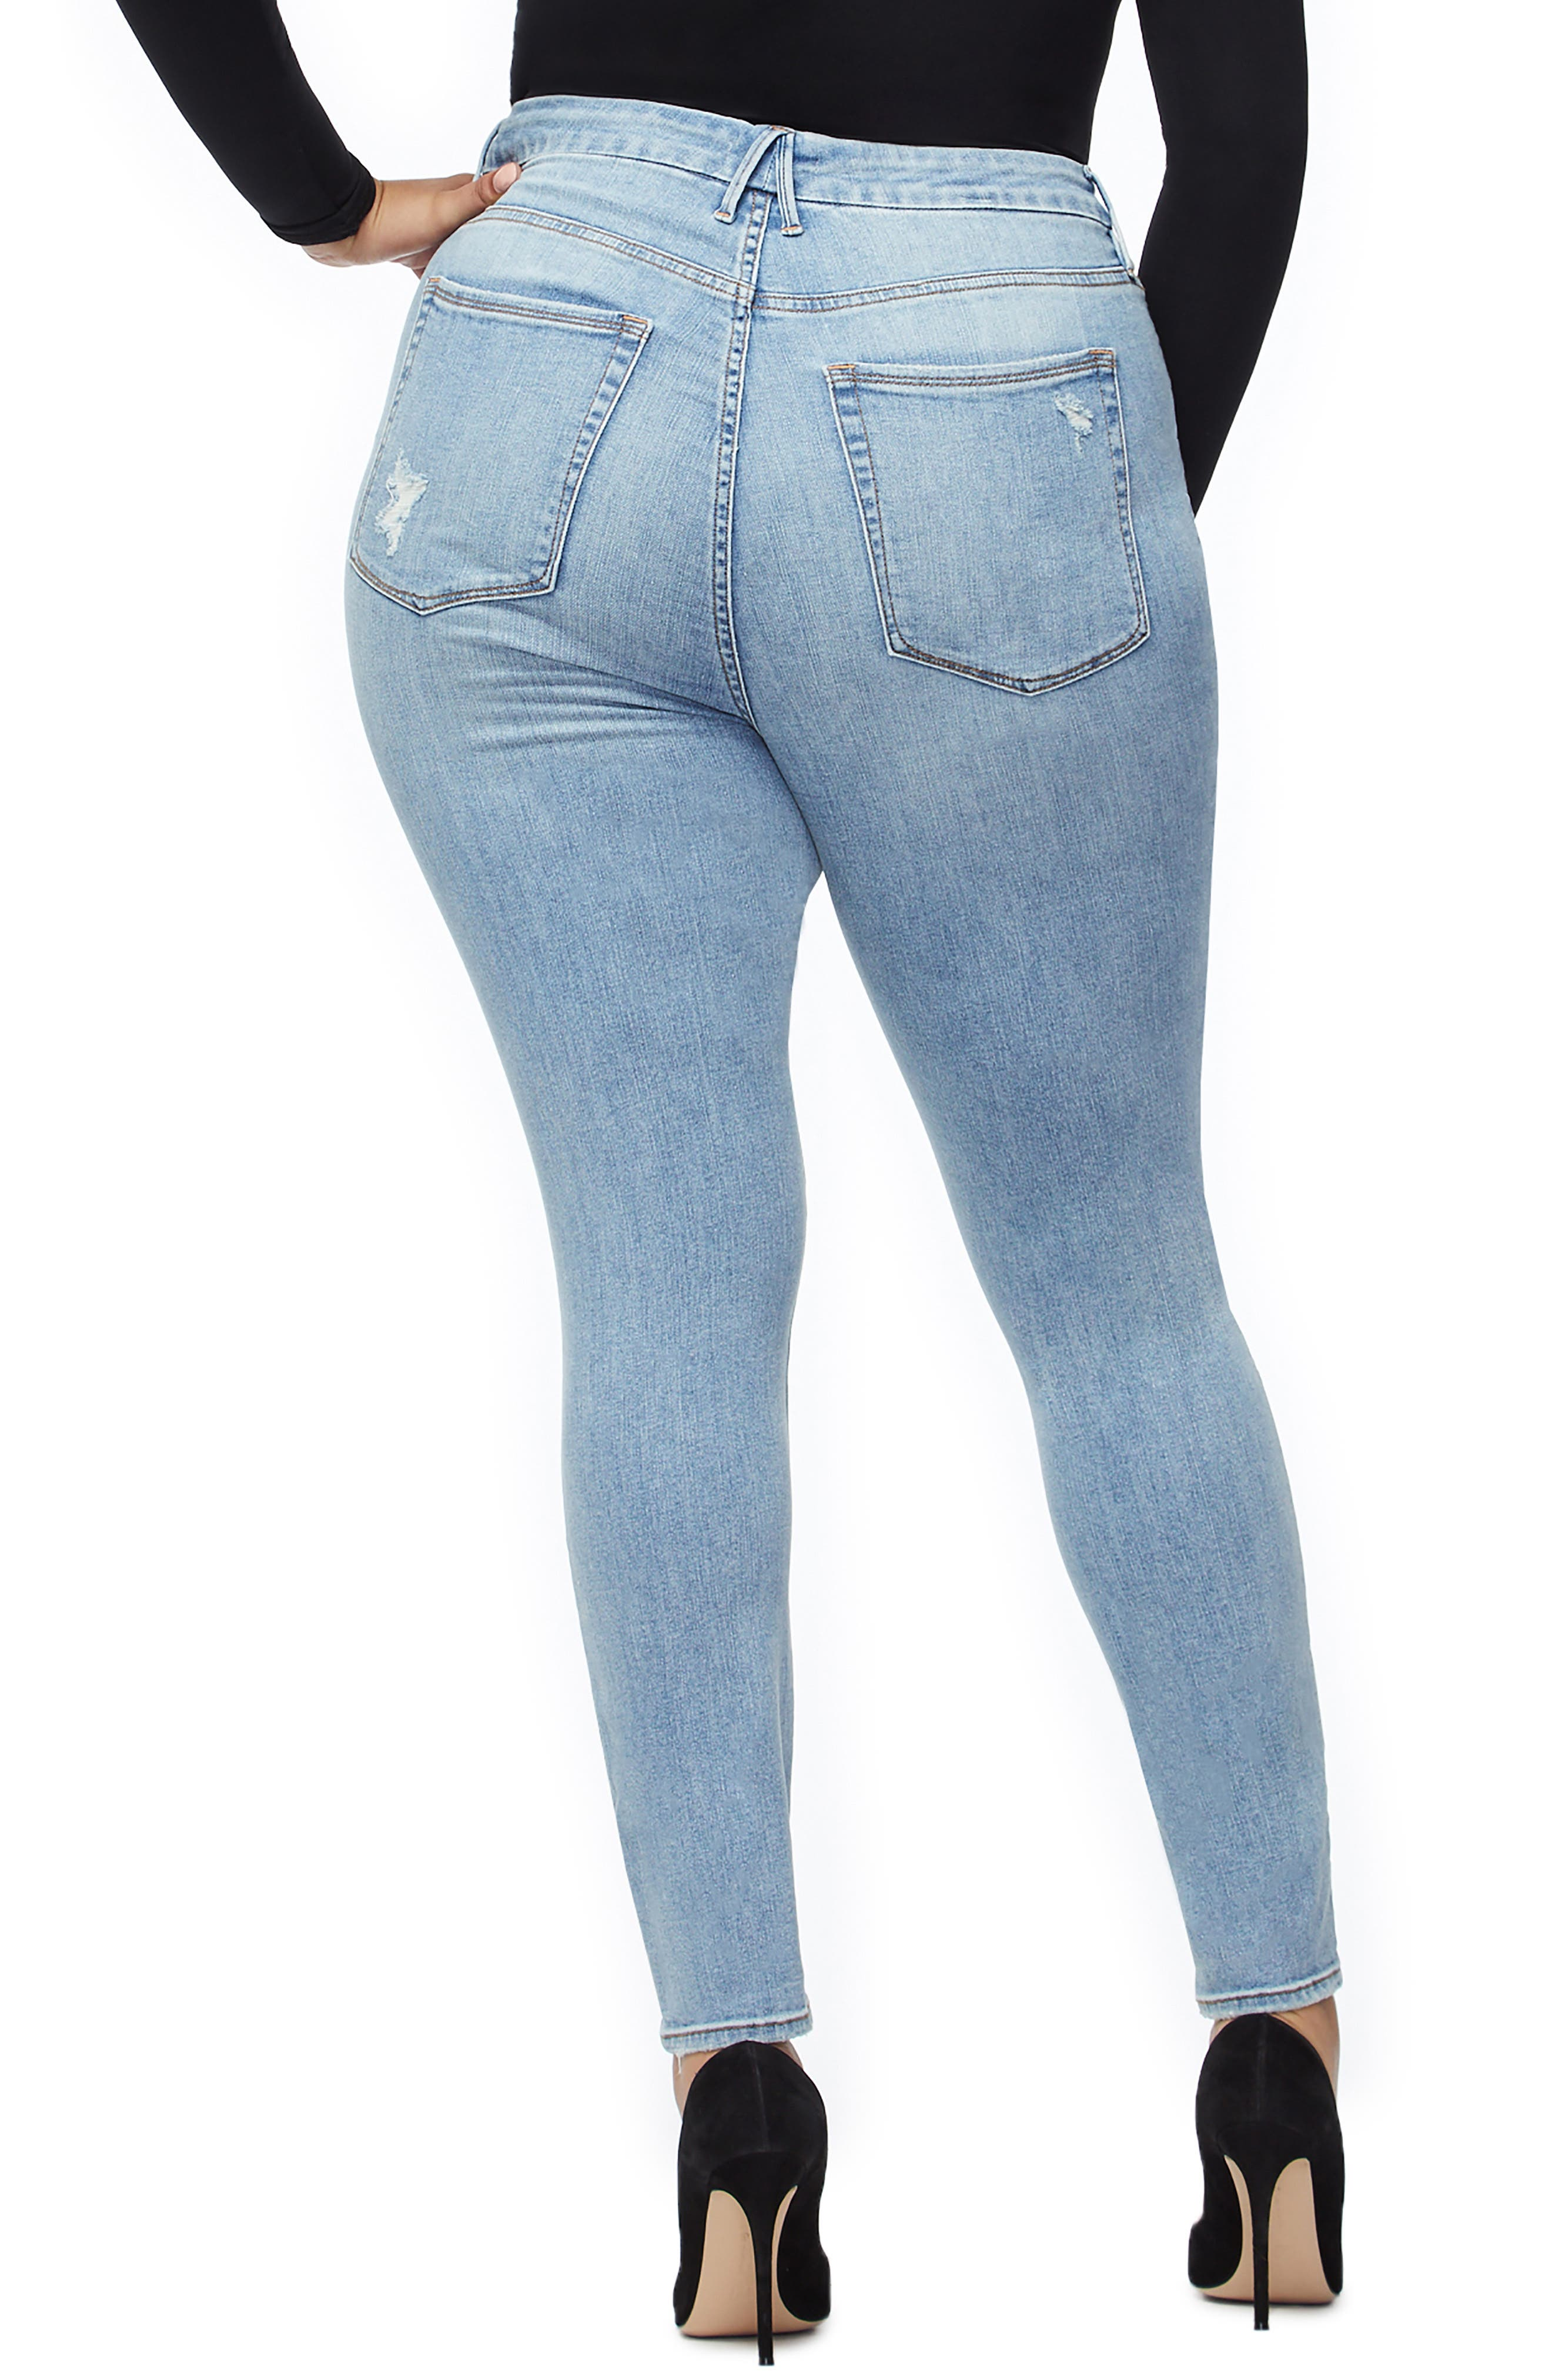 GOOD AMERICAN, Good Legs Ripped High Waist Skinny Jeans, Alternate thumbnail 6, color, BLUE221